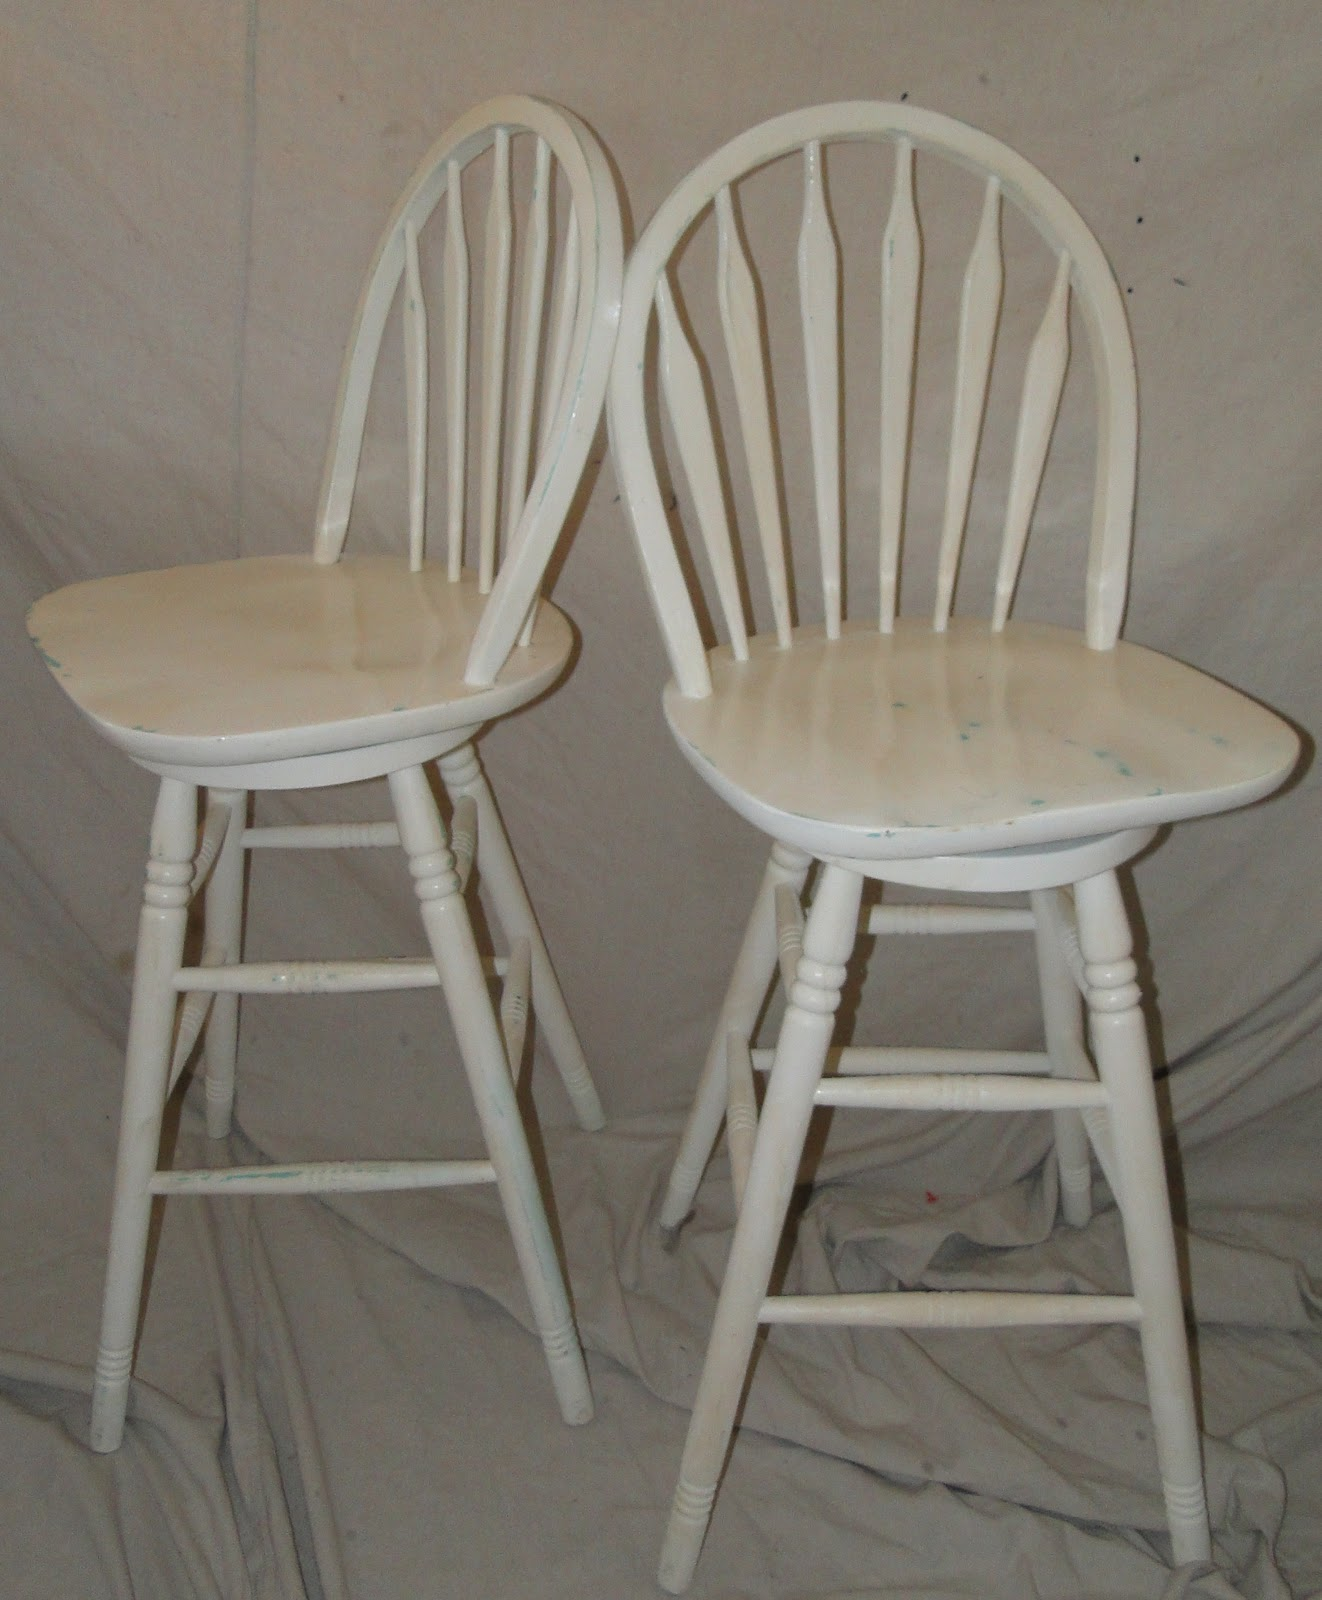 ms funky junk shabby chic bar stools 35